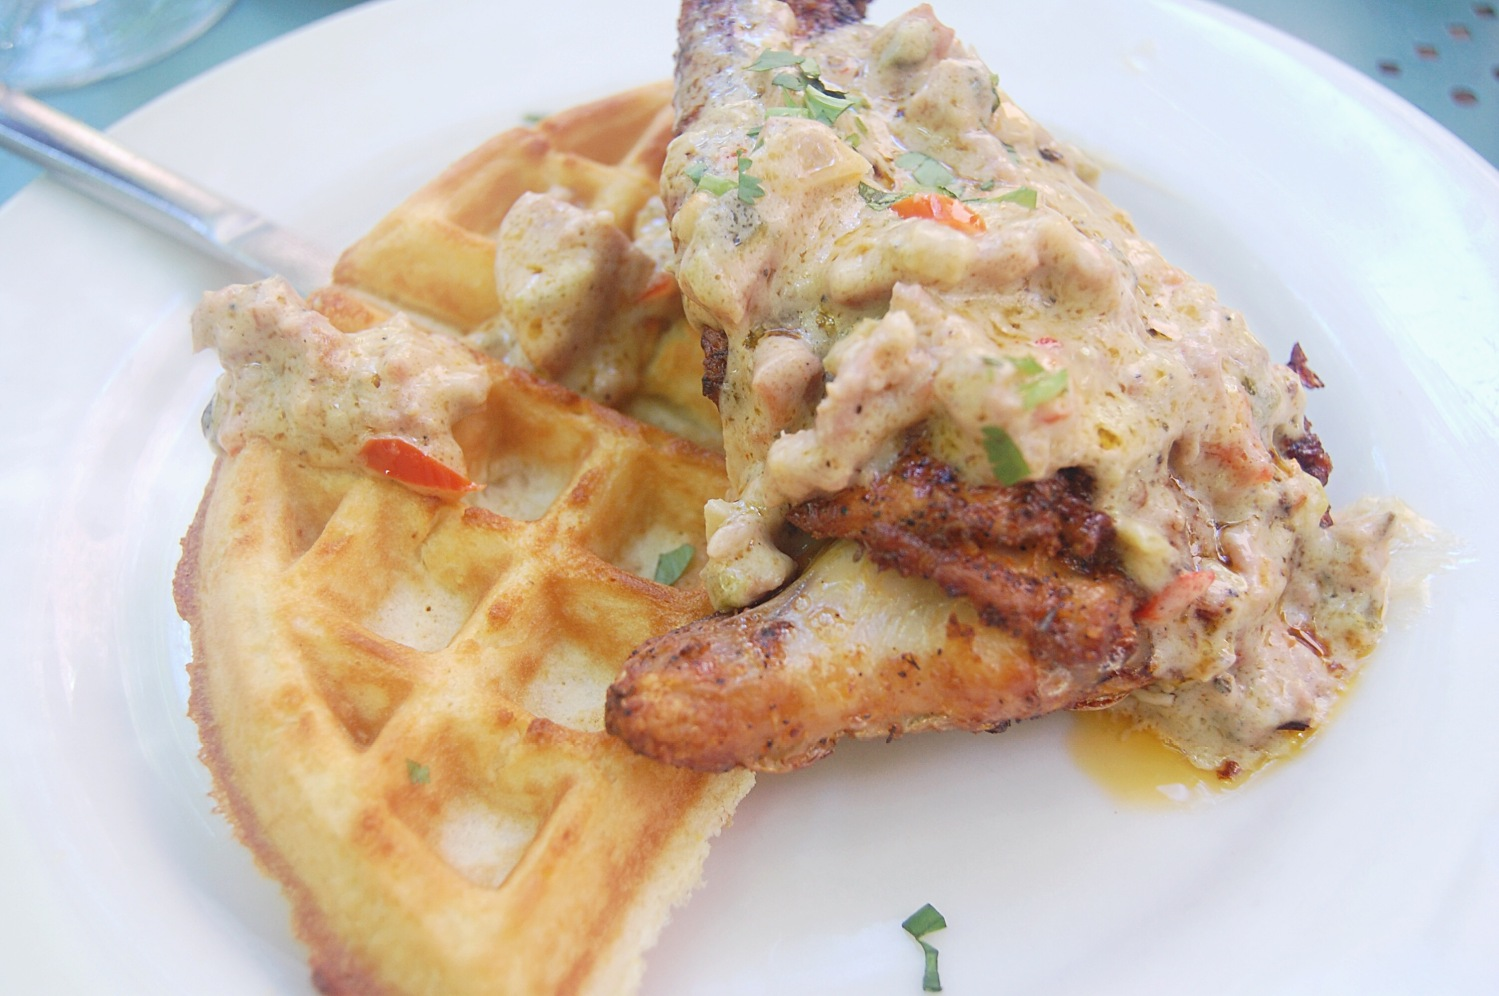 Chicken and waffles from Cafe Amelie, New Orleans